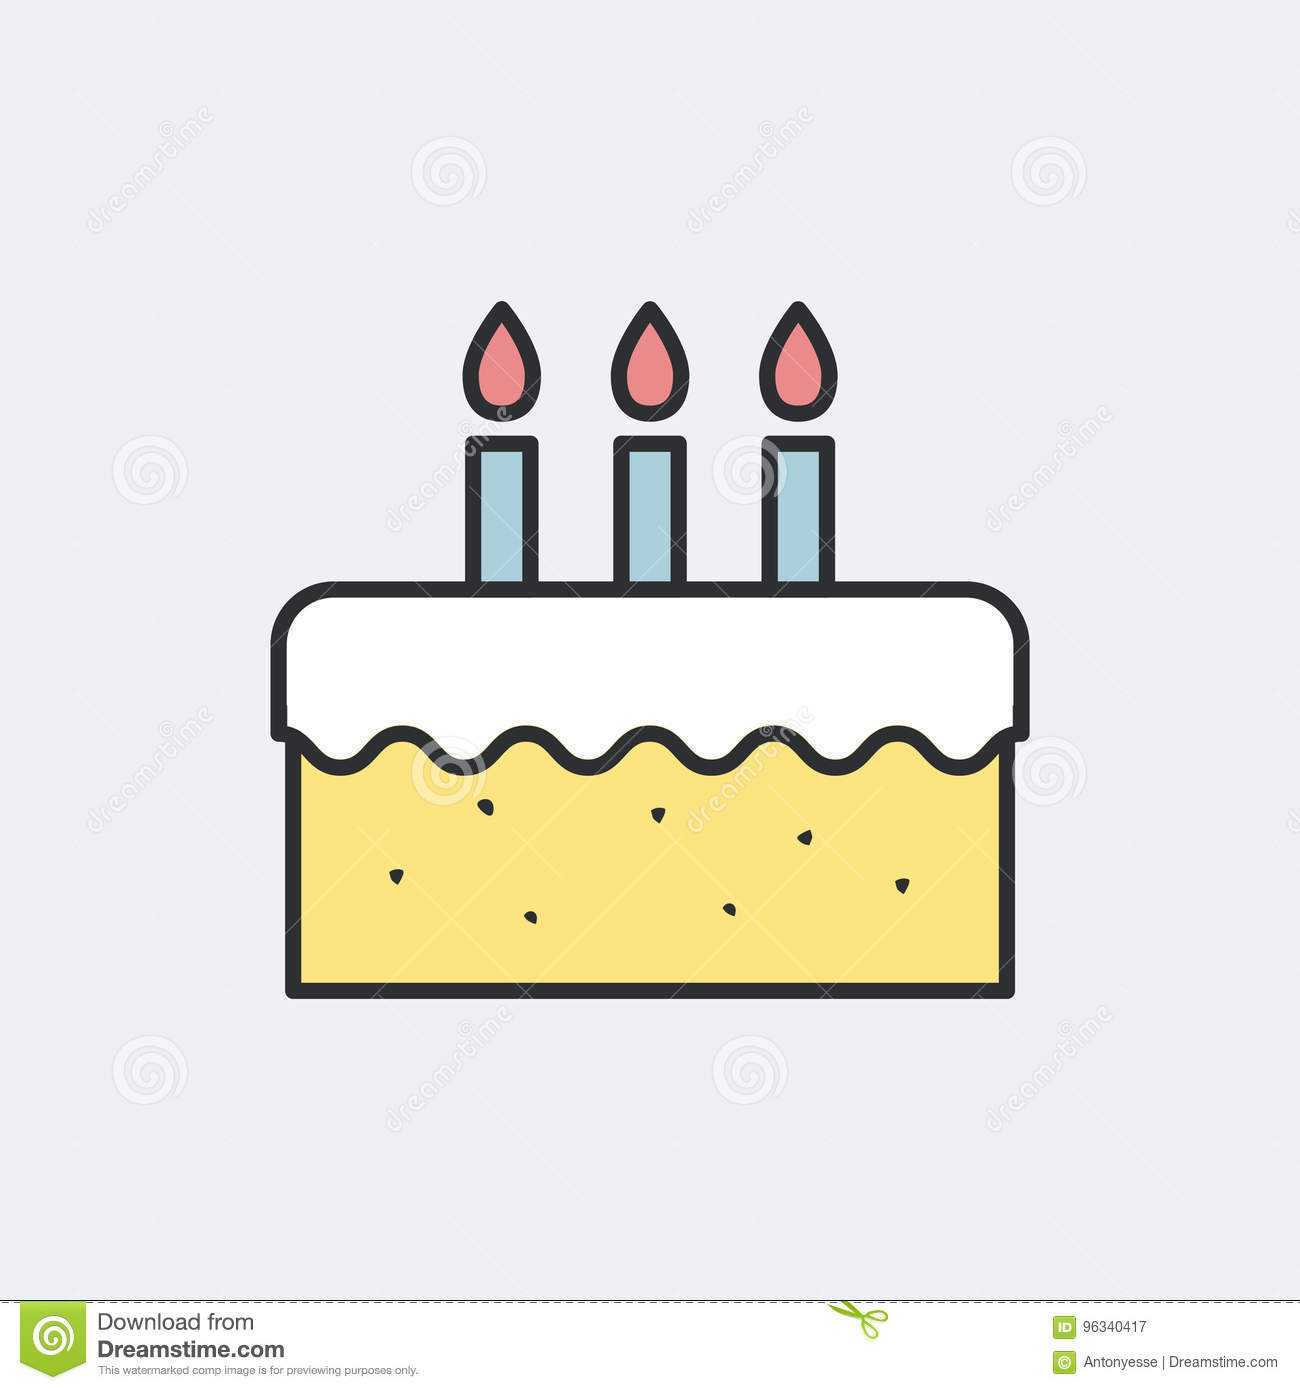 Birthday Cake Symbol Concept Stock Vector Illustration of holiday